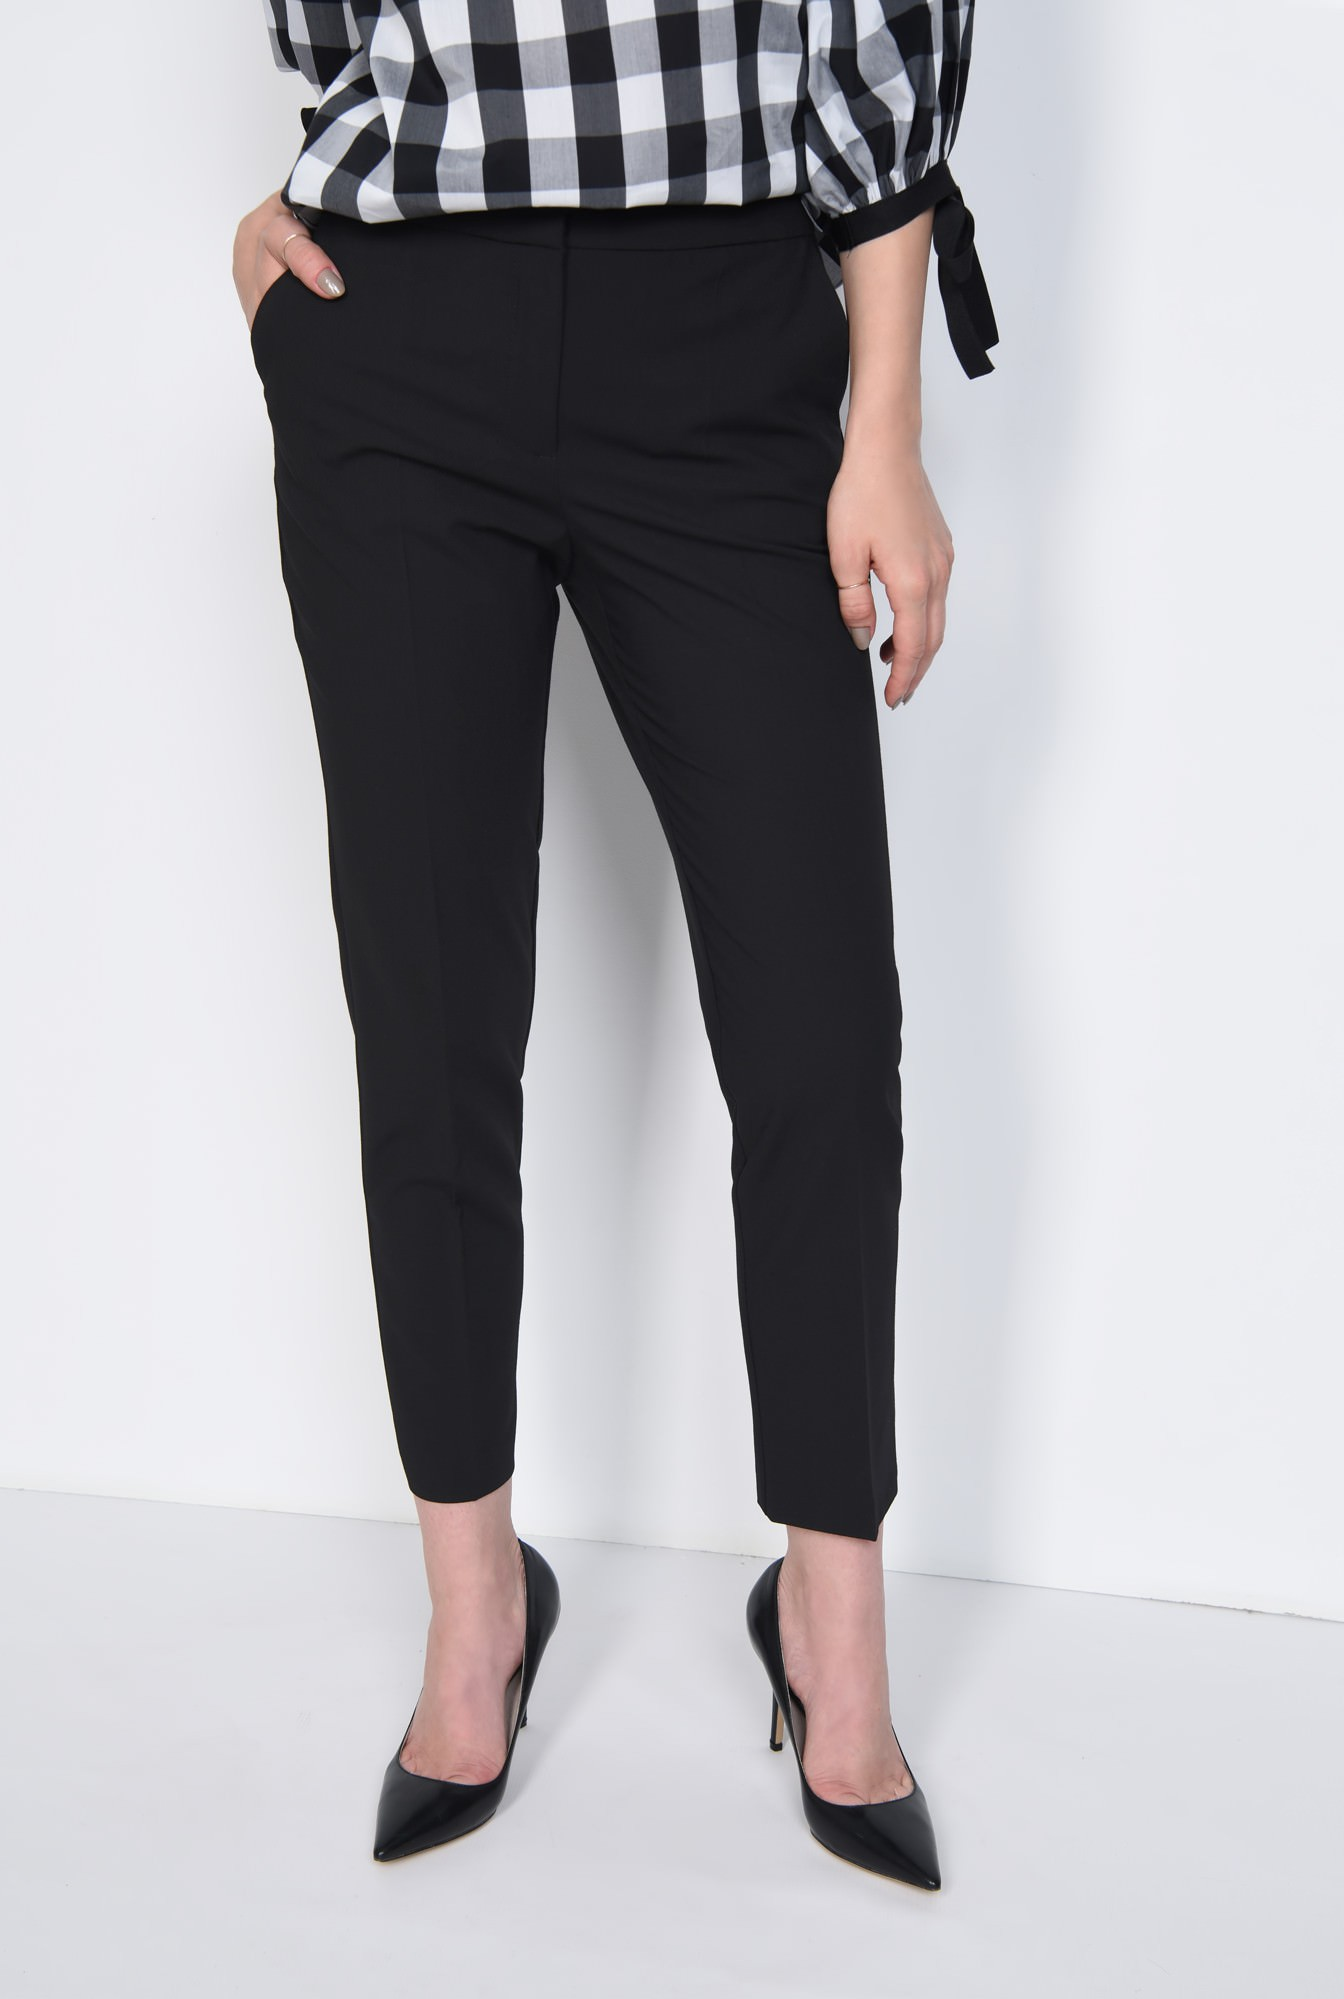 2 - PANTALON OFFICE PT 160-NEGRU